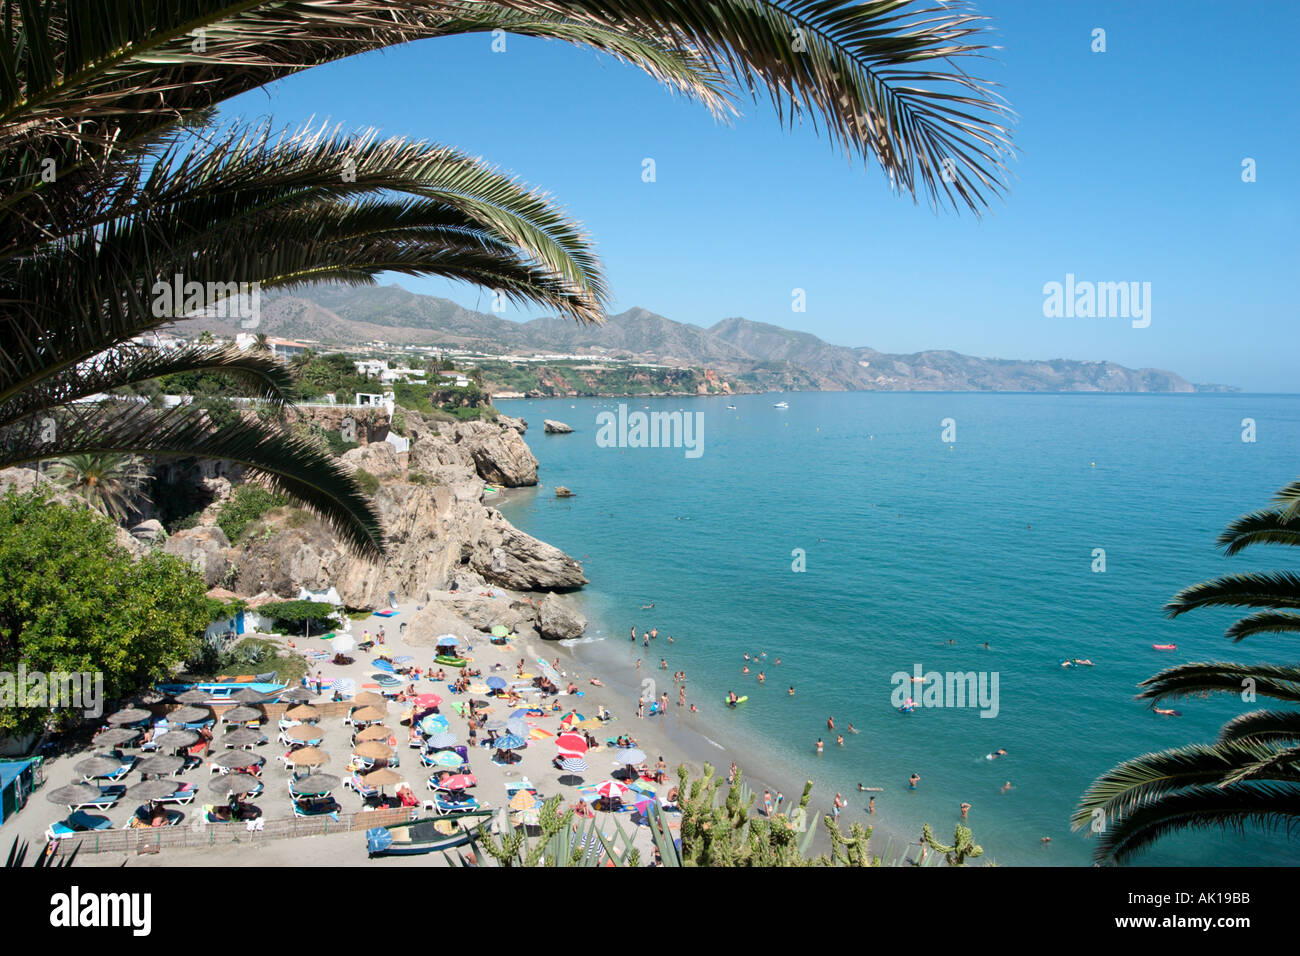 View from the Balcón de Europa in the old town , Nerja, Costa del Sol, Andalusia, Spain Stock Photo